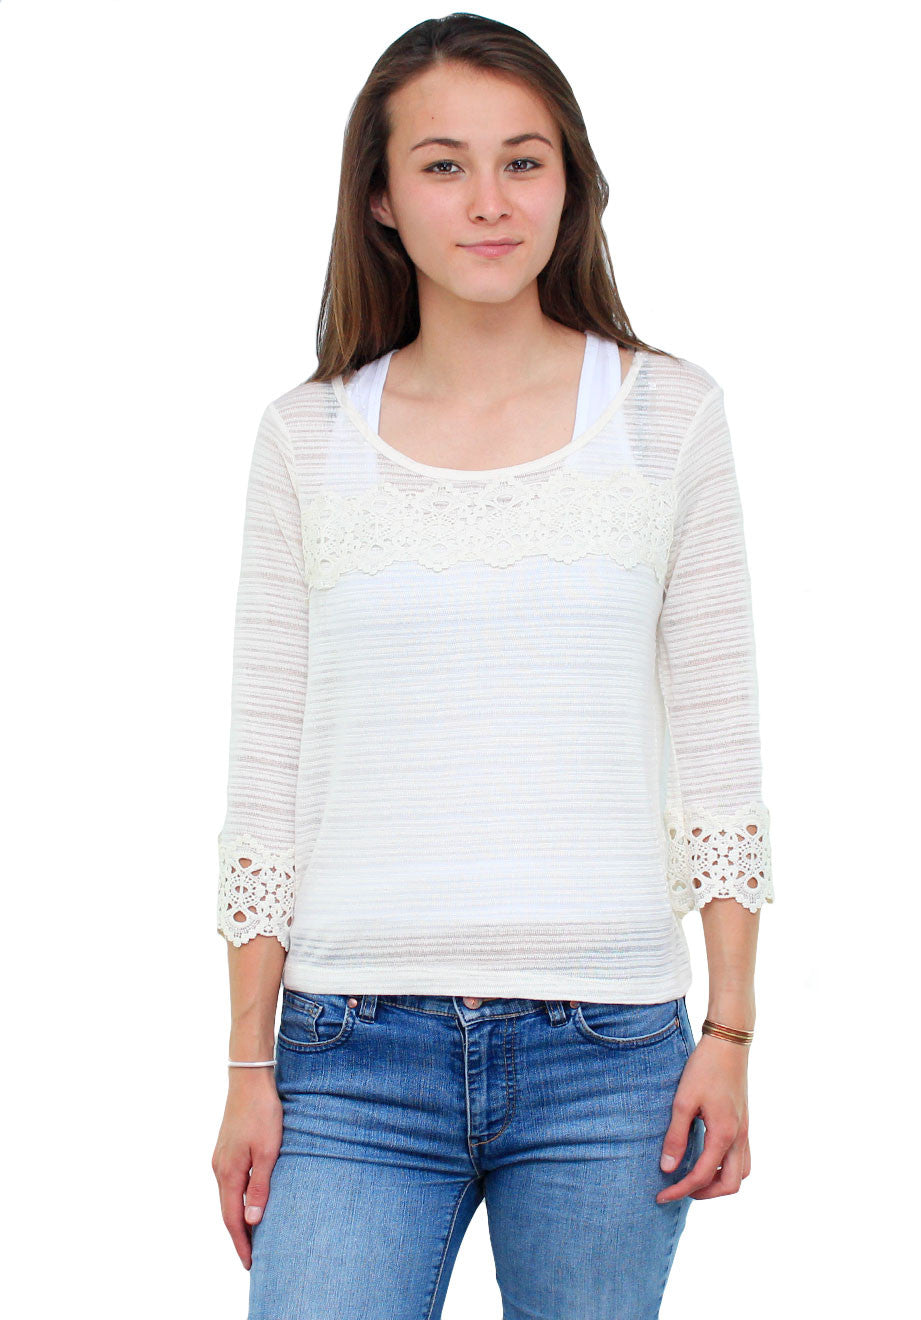 Taupe Light Weight Lined Crochet Hemmed Blouse